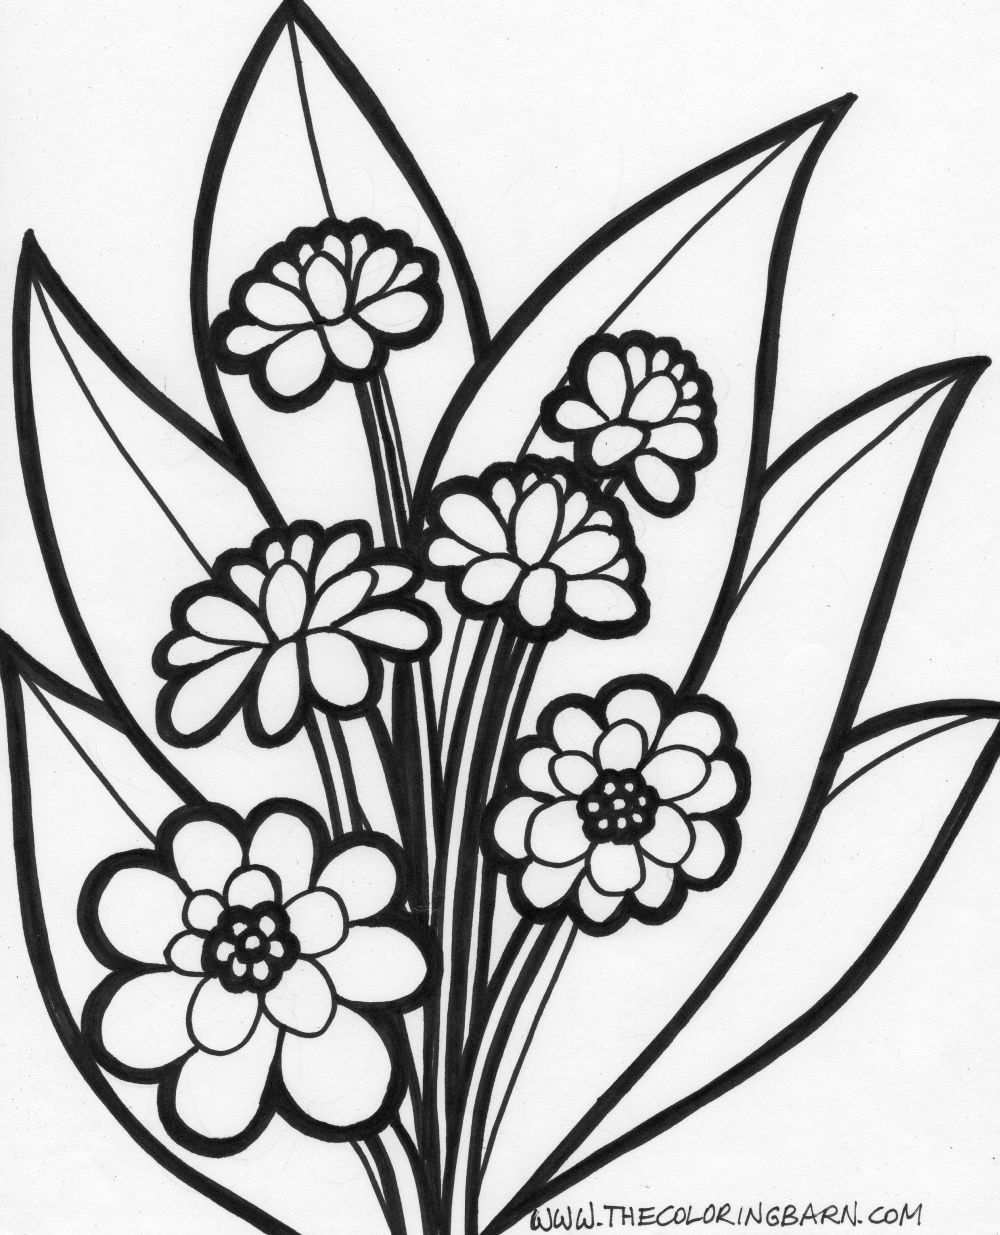 Flowers Coloring Sheet  summer flowers printable coloring pages Free